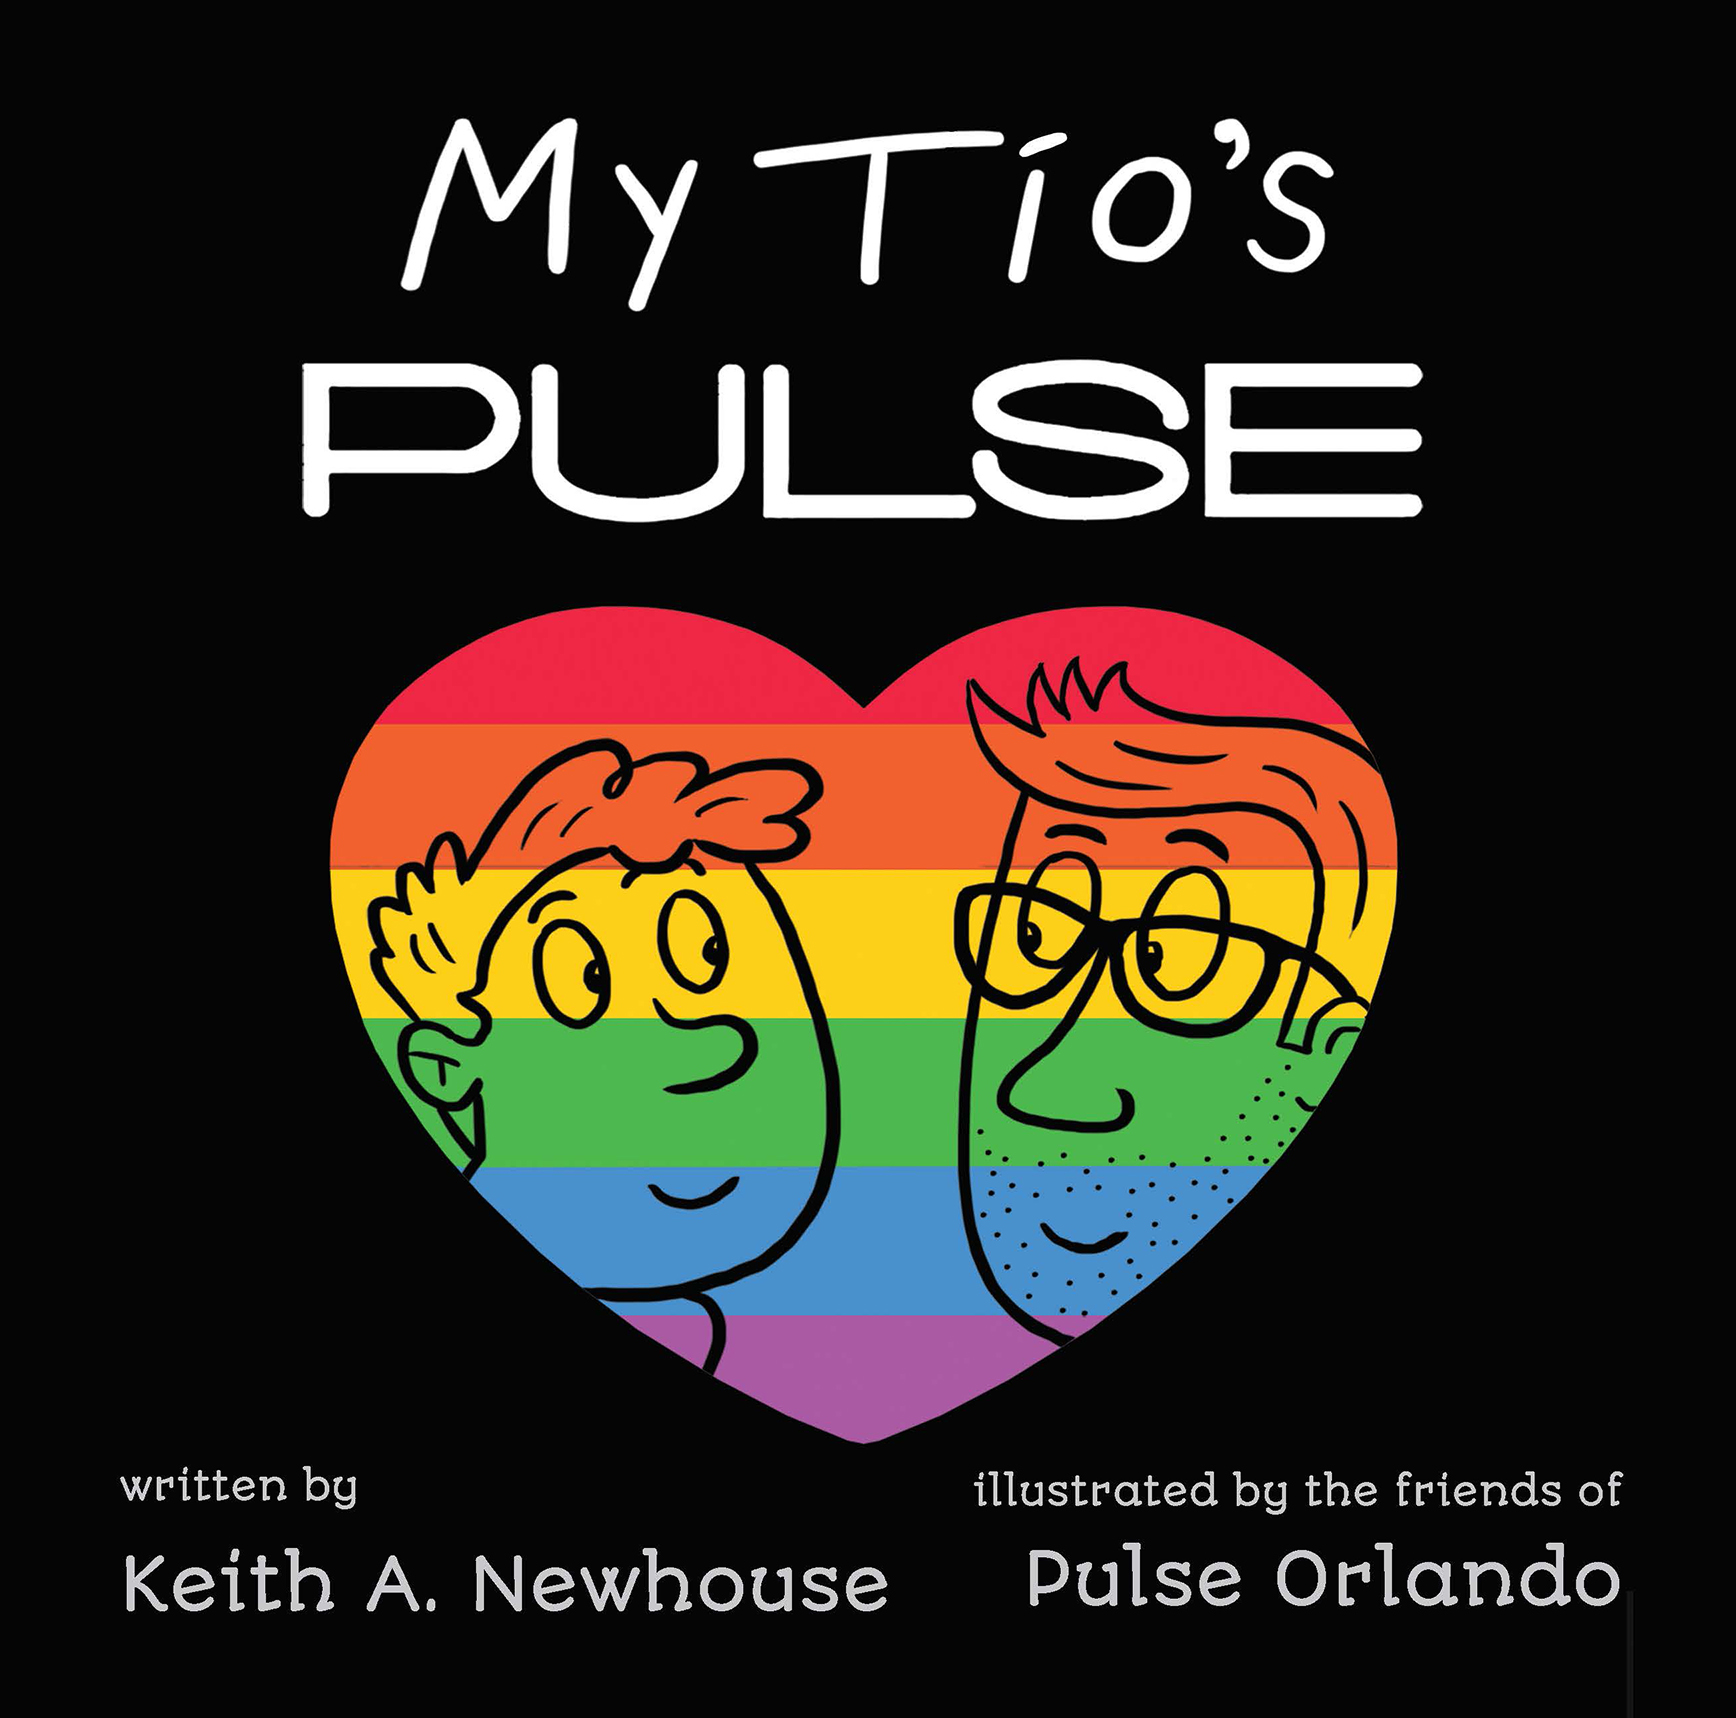 My Tio's Pulse  is a children's book conceived and published in 2018 by  Newhouse Creative Group  in Orlando, Florida. The story explains the 2016 Orlando Pulse tragedy to kids in a non-threatening way. I became Director of Layout & Design as well as a contributing illustrator. A Spanish version of the book is being discussed.